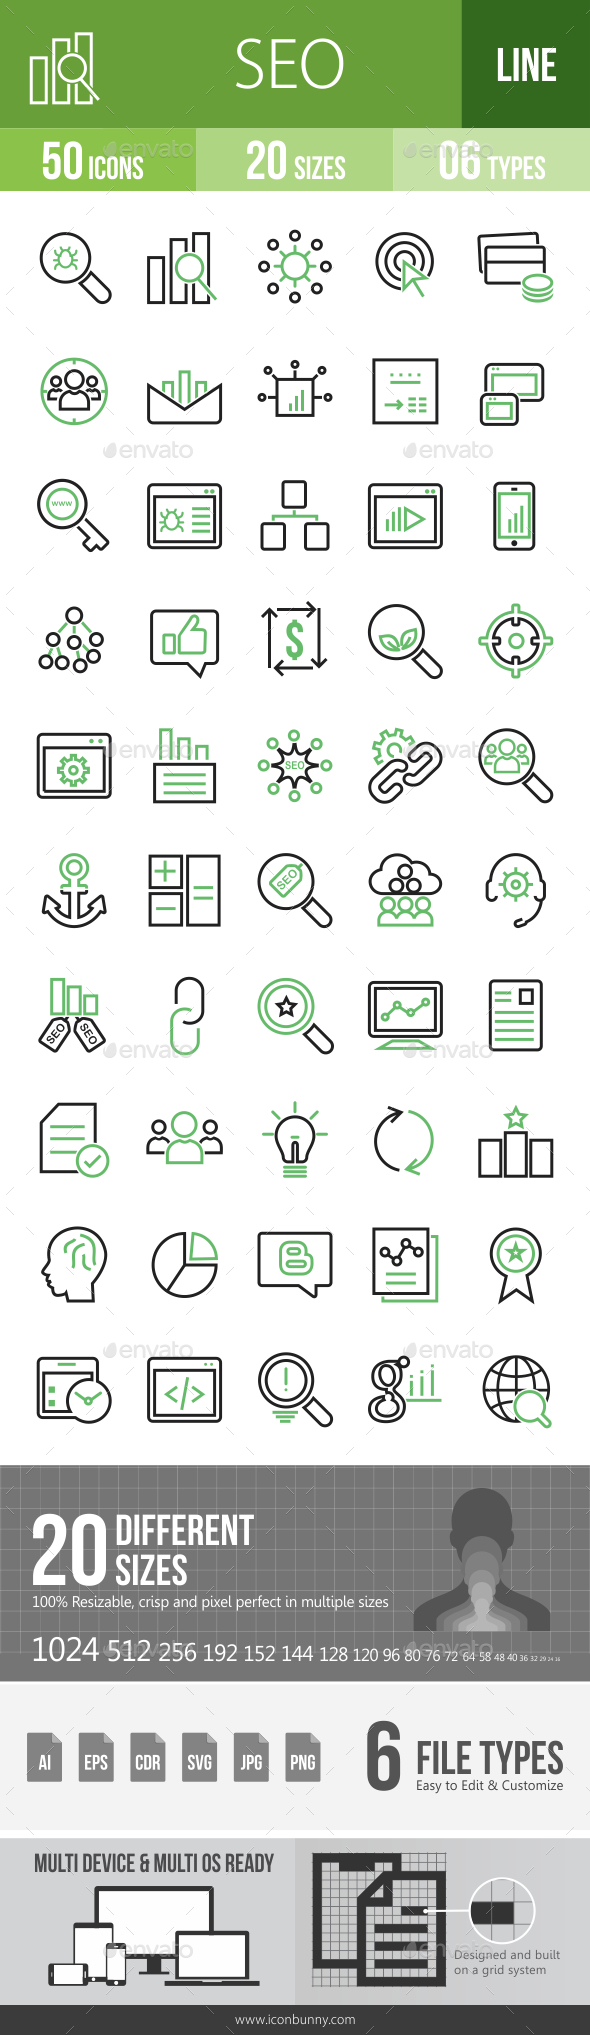 GraphicRiver 50 SEO Green & Black Line Icons 21194423